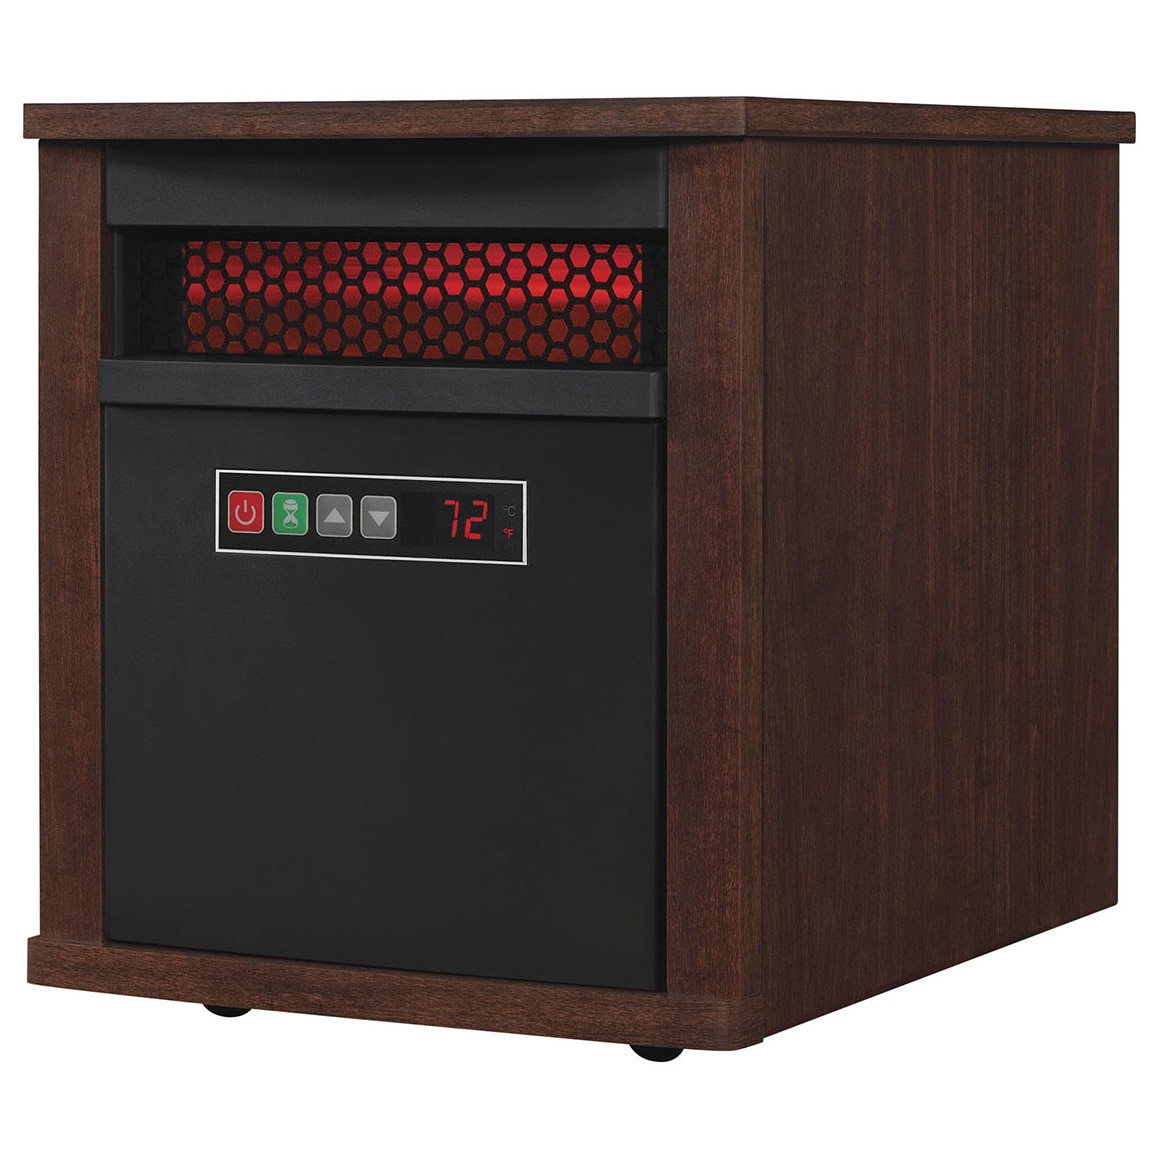 Duraflame 9HM7000-NC04 Cherry (Red) Portable Electric Inf...